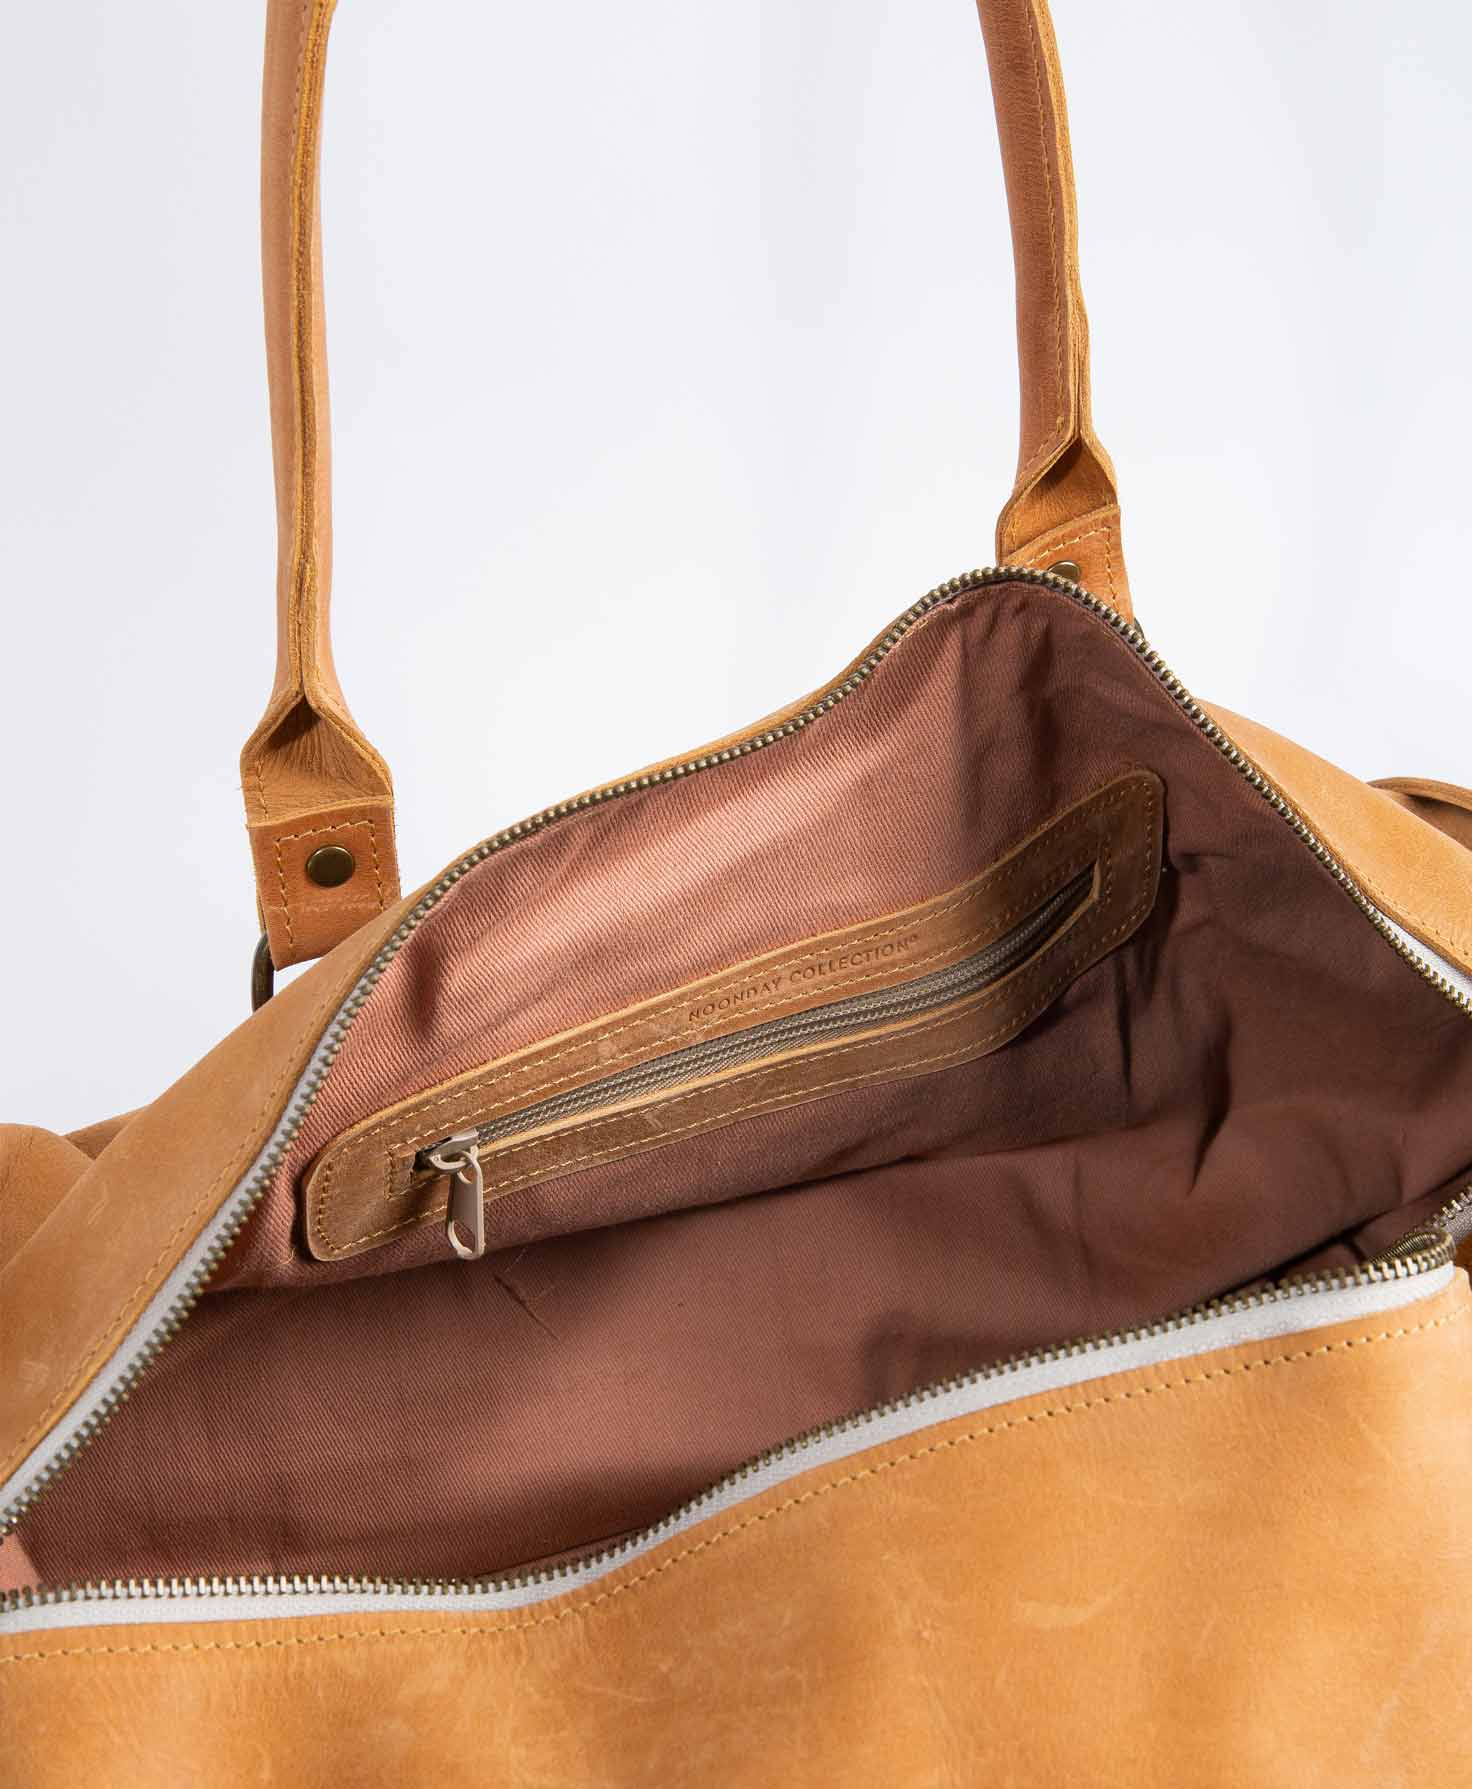 The Awasa Weekender Bag is unzipped, revealing its interior. The lining of the bag is a solid light-brown color. Inside the bag is a small zipper compartment. The zipper is outlined in leather, and